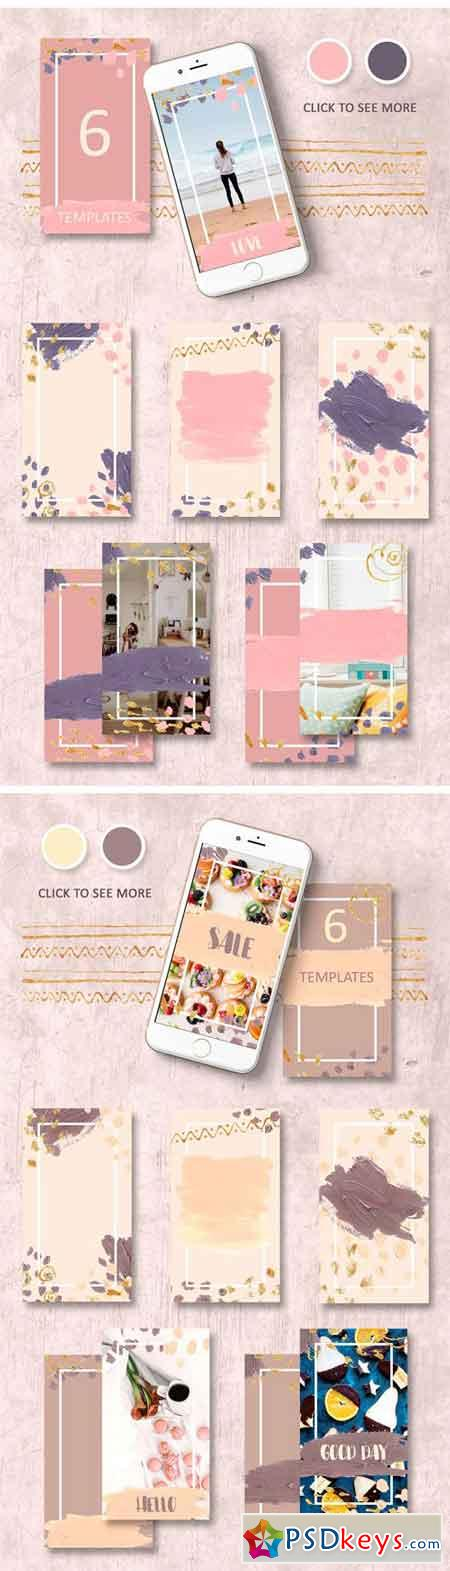 Instagram Stories Template 2265493